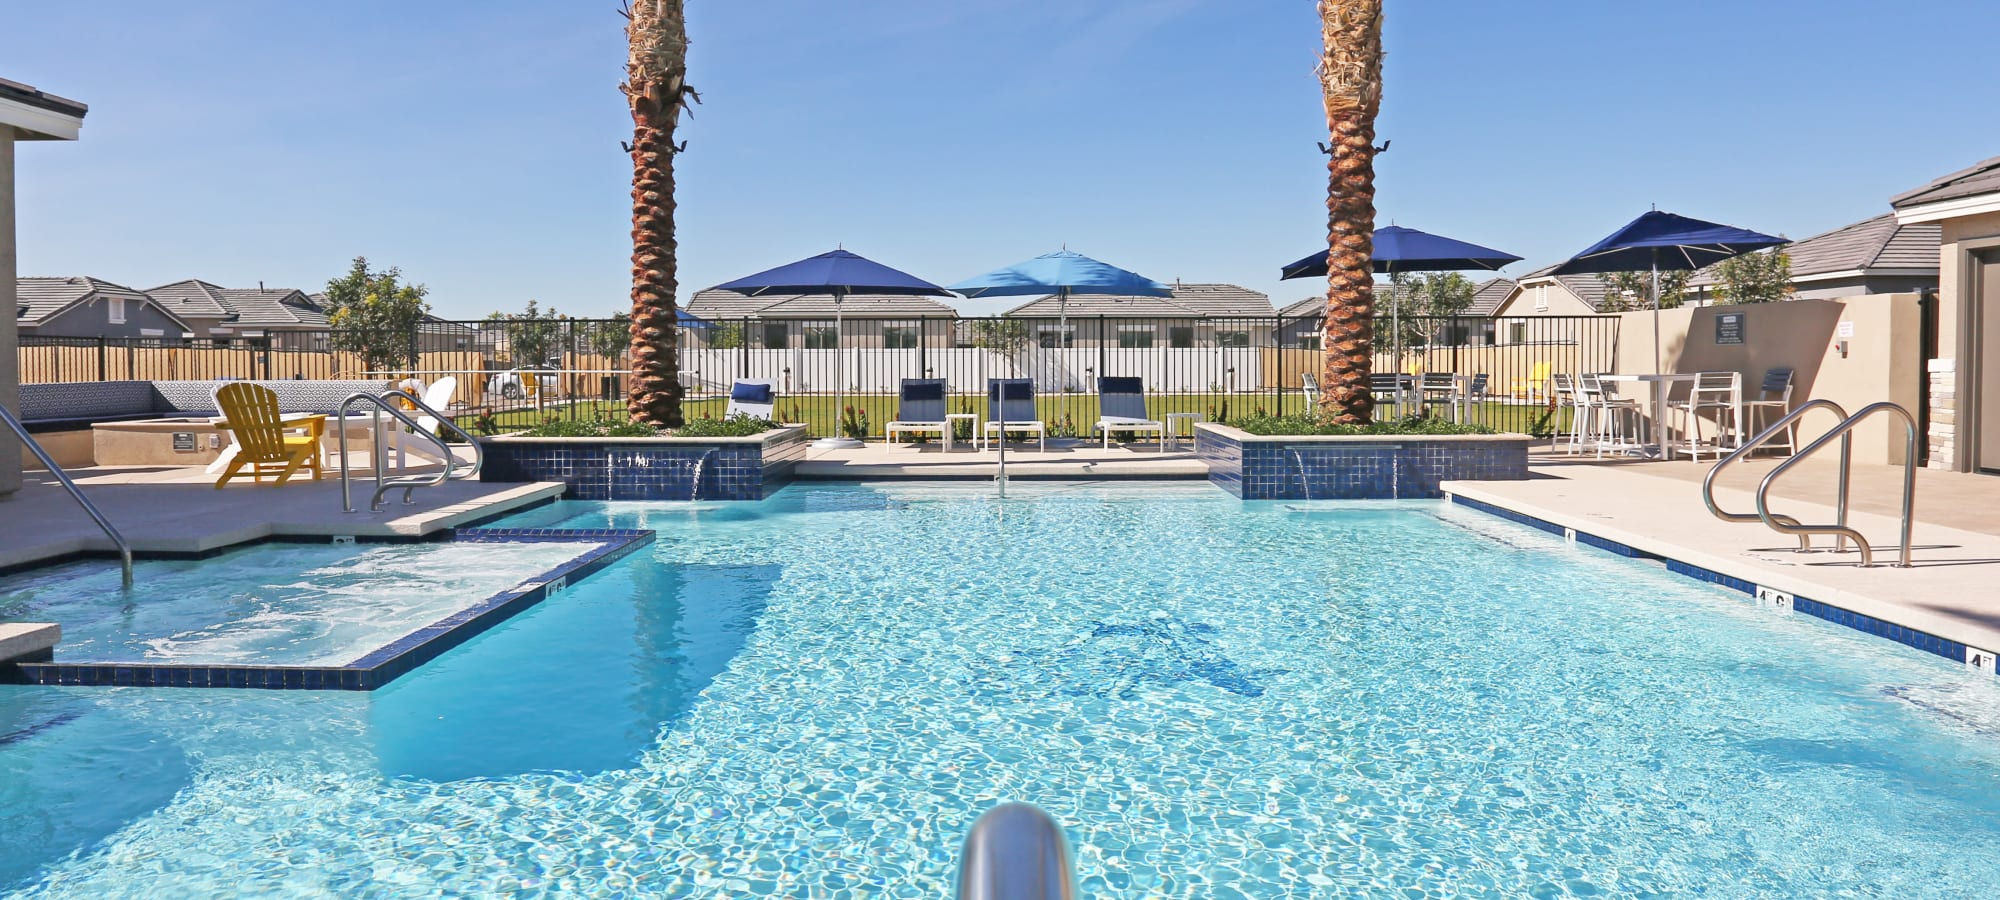 Swimming pool on another beautiful day at Christopher Todd Communities On Happy Valley in Peoria, Arizona